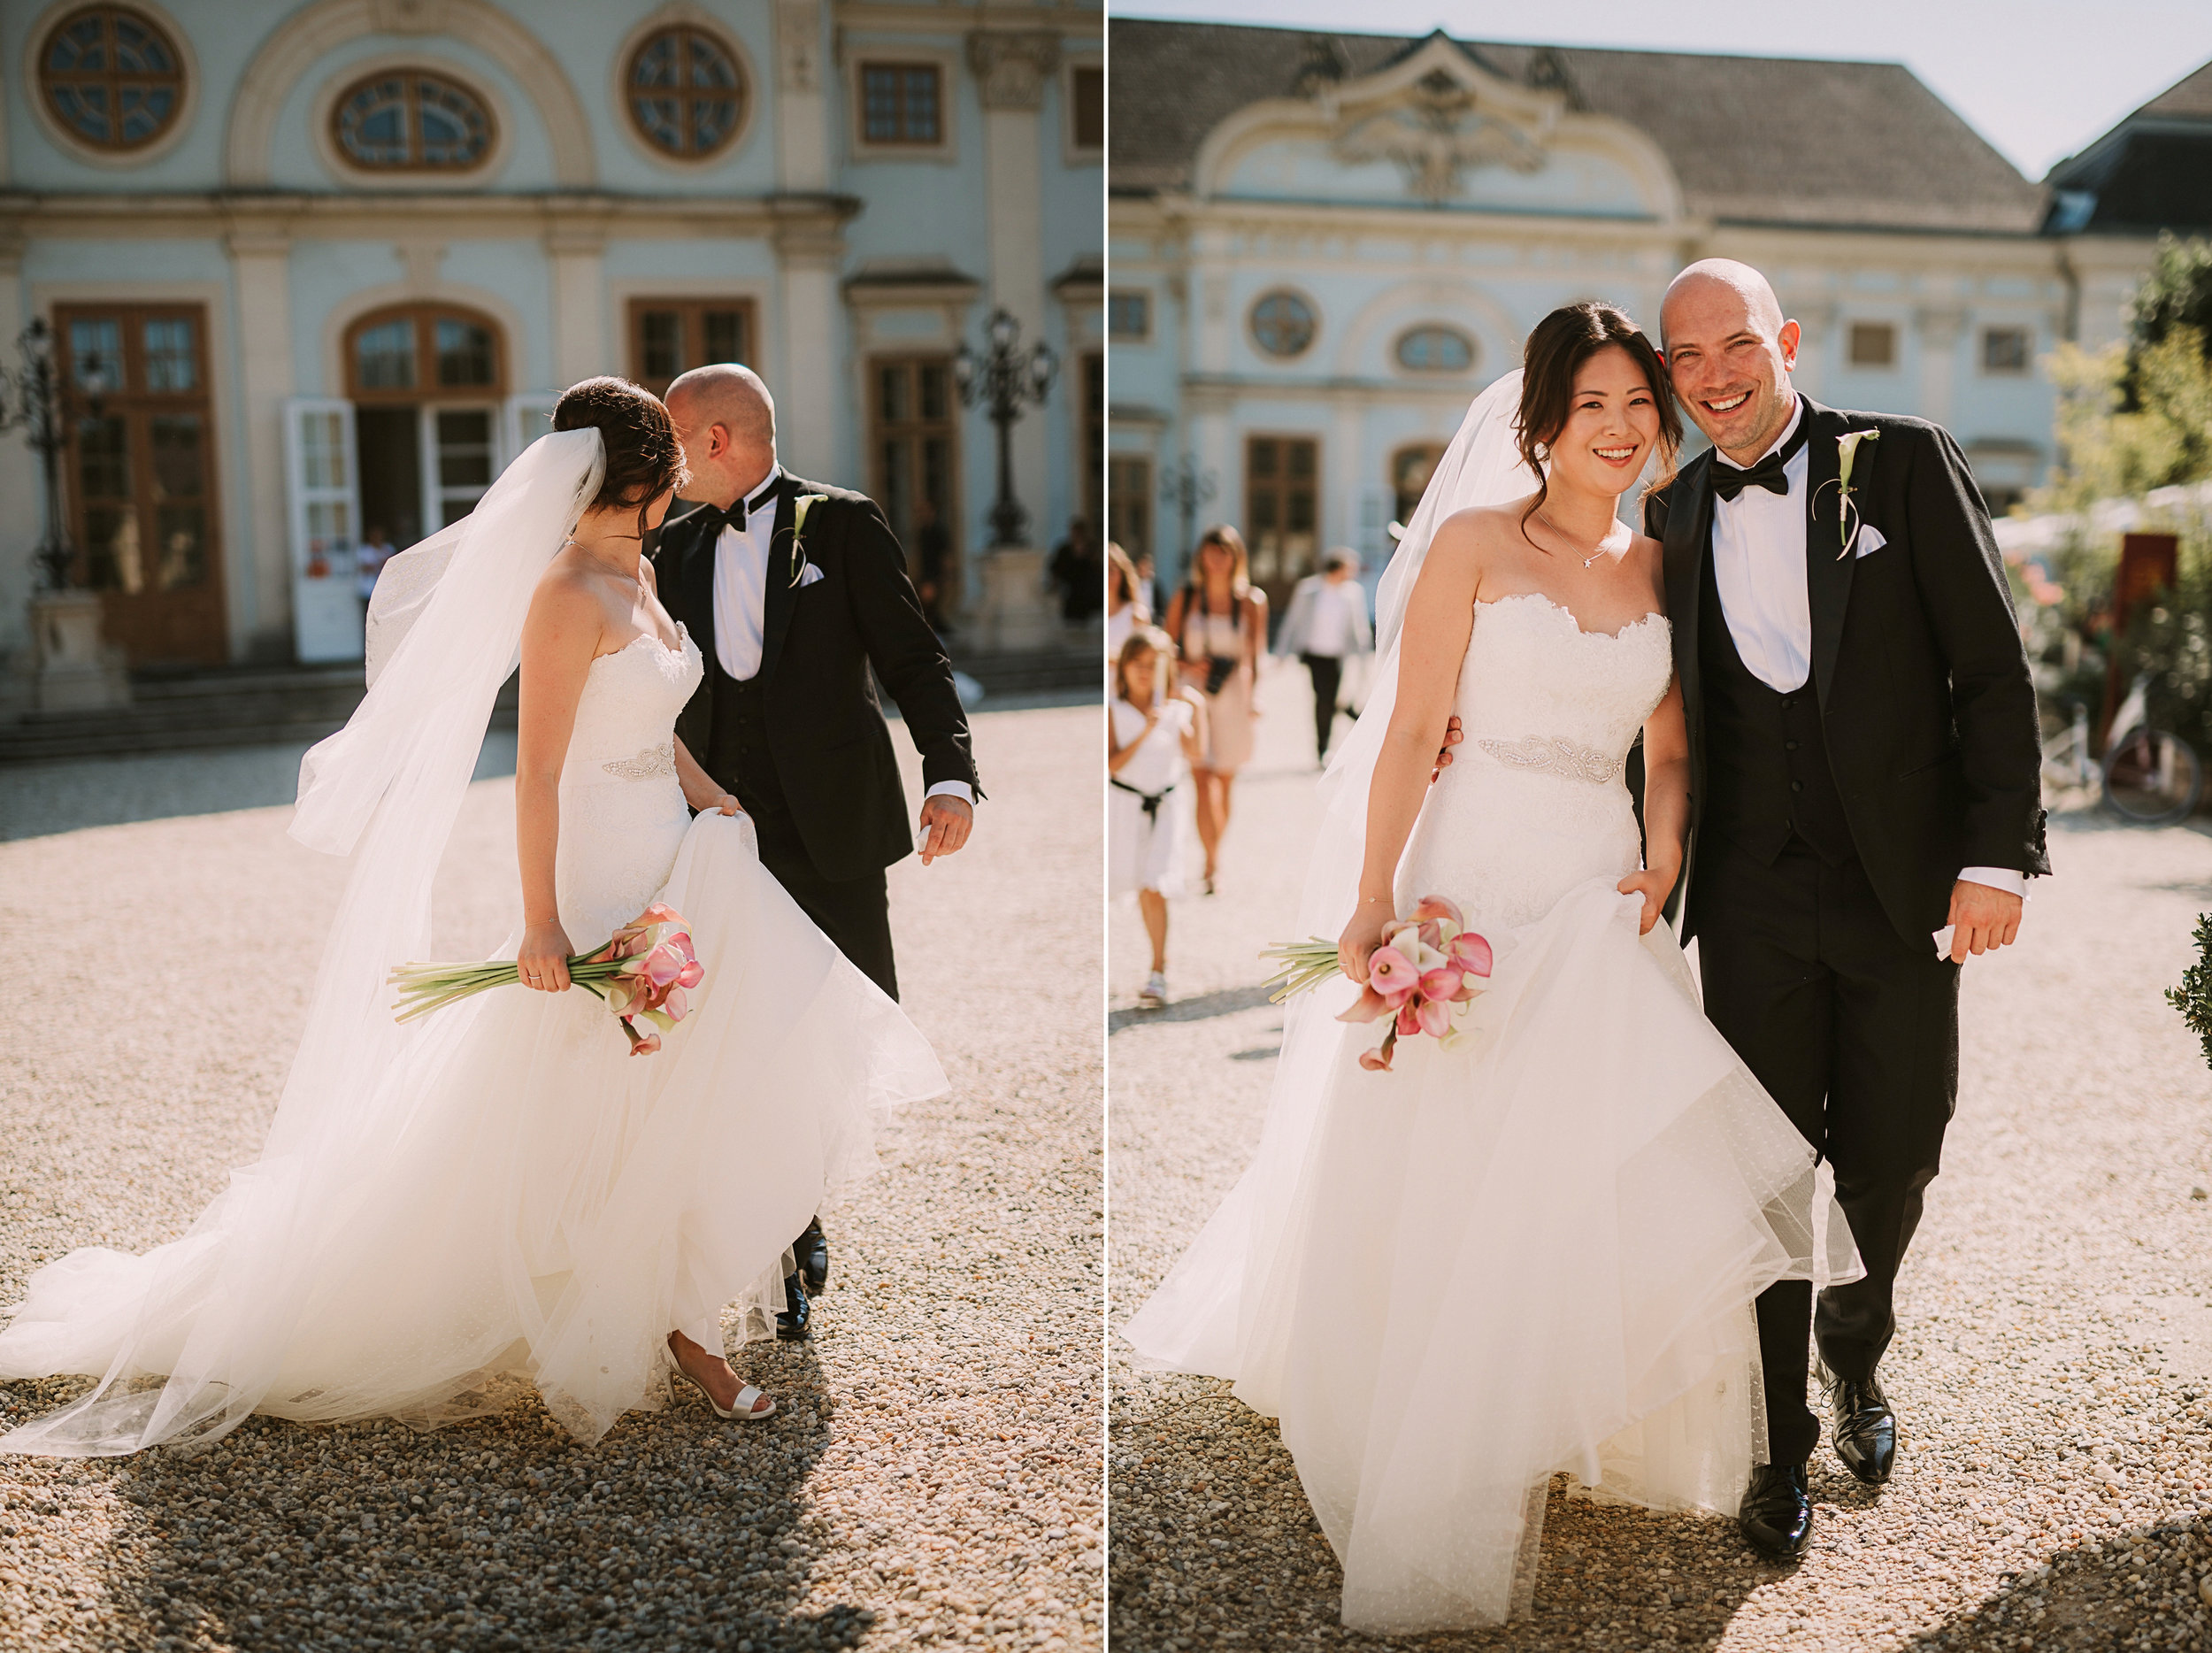 Austria Halbturn schloss castle wedding photographer (158 of 240).jpg